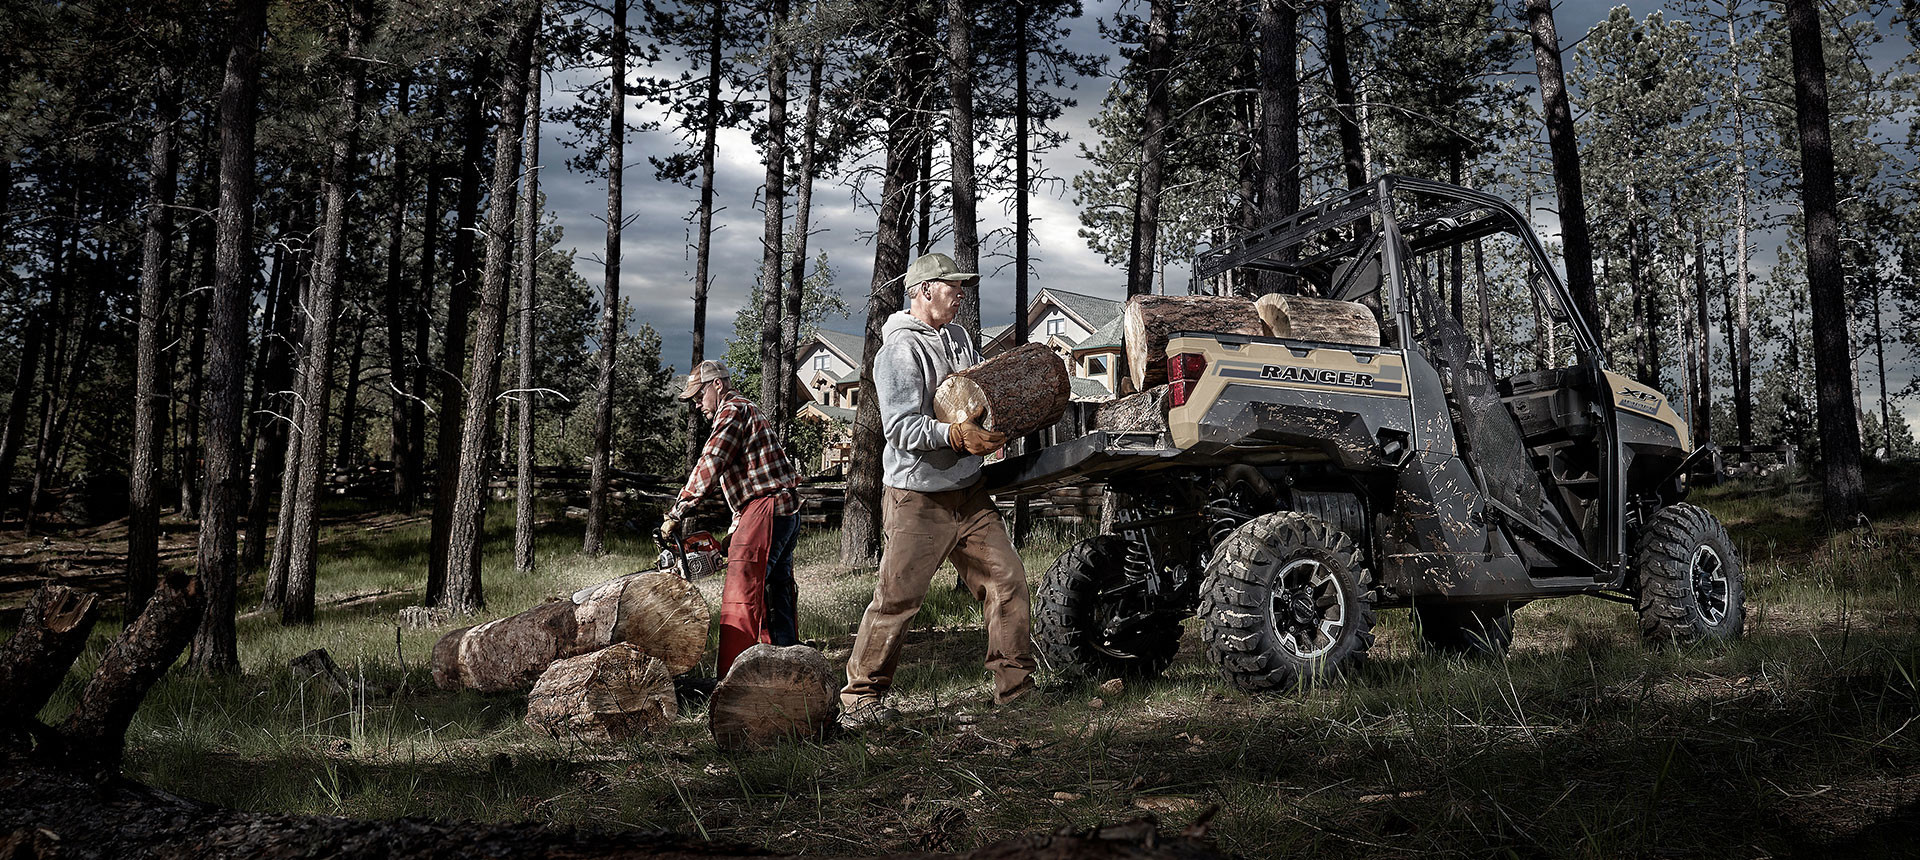 2020 RANGER® XP 1000 High Lifter Edition Instagram image 9